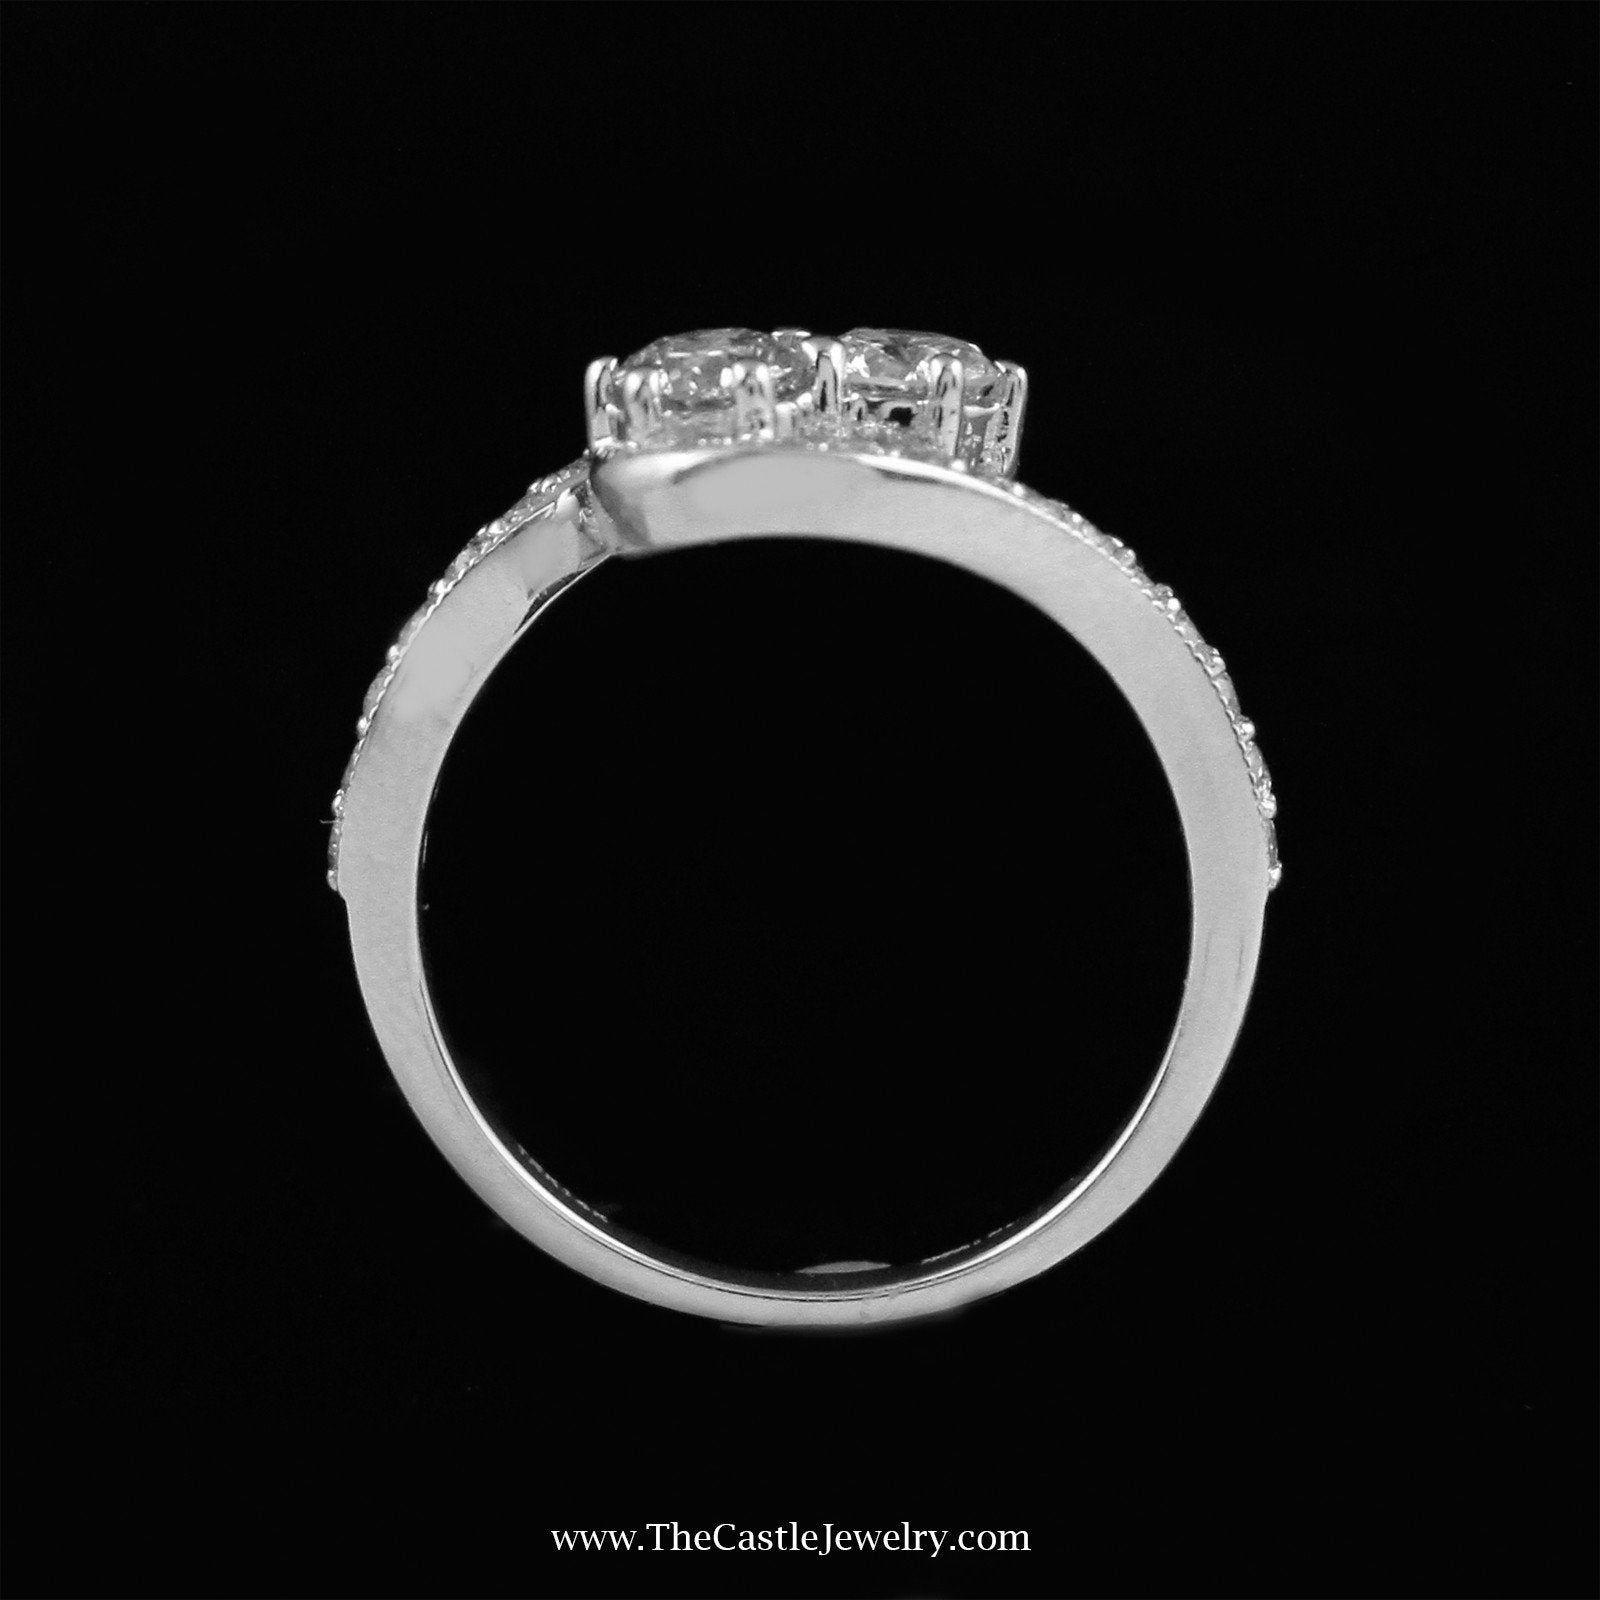 My Love My Best Friend 2 Round 1cttw Diamond Ring in 14K White Gold-1